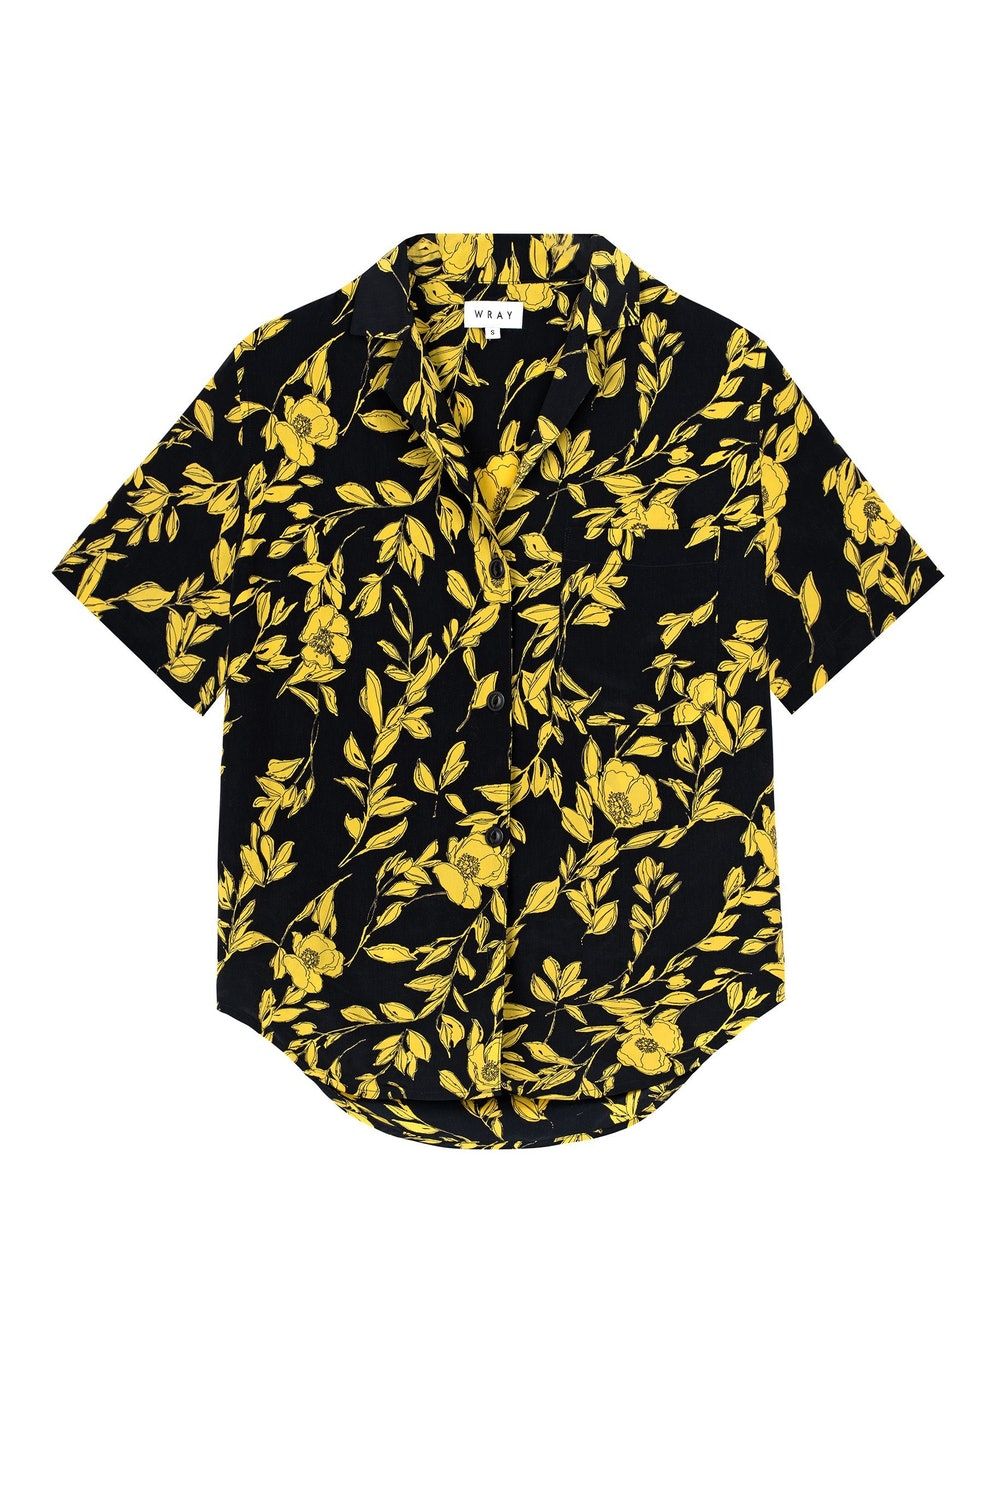 Gregory Top - Taxicab Floral